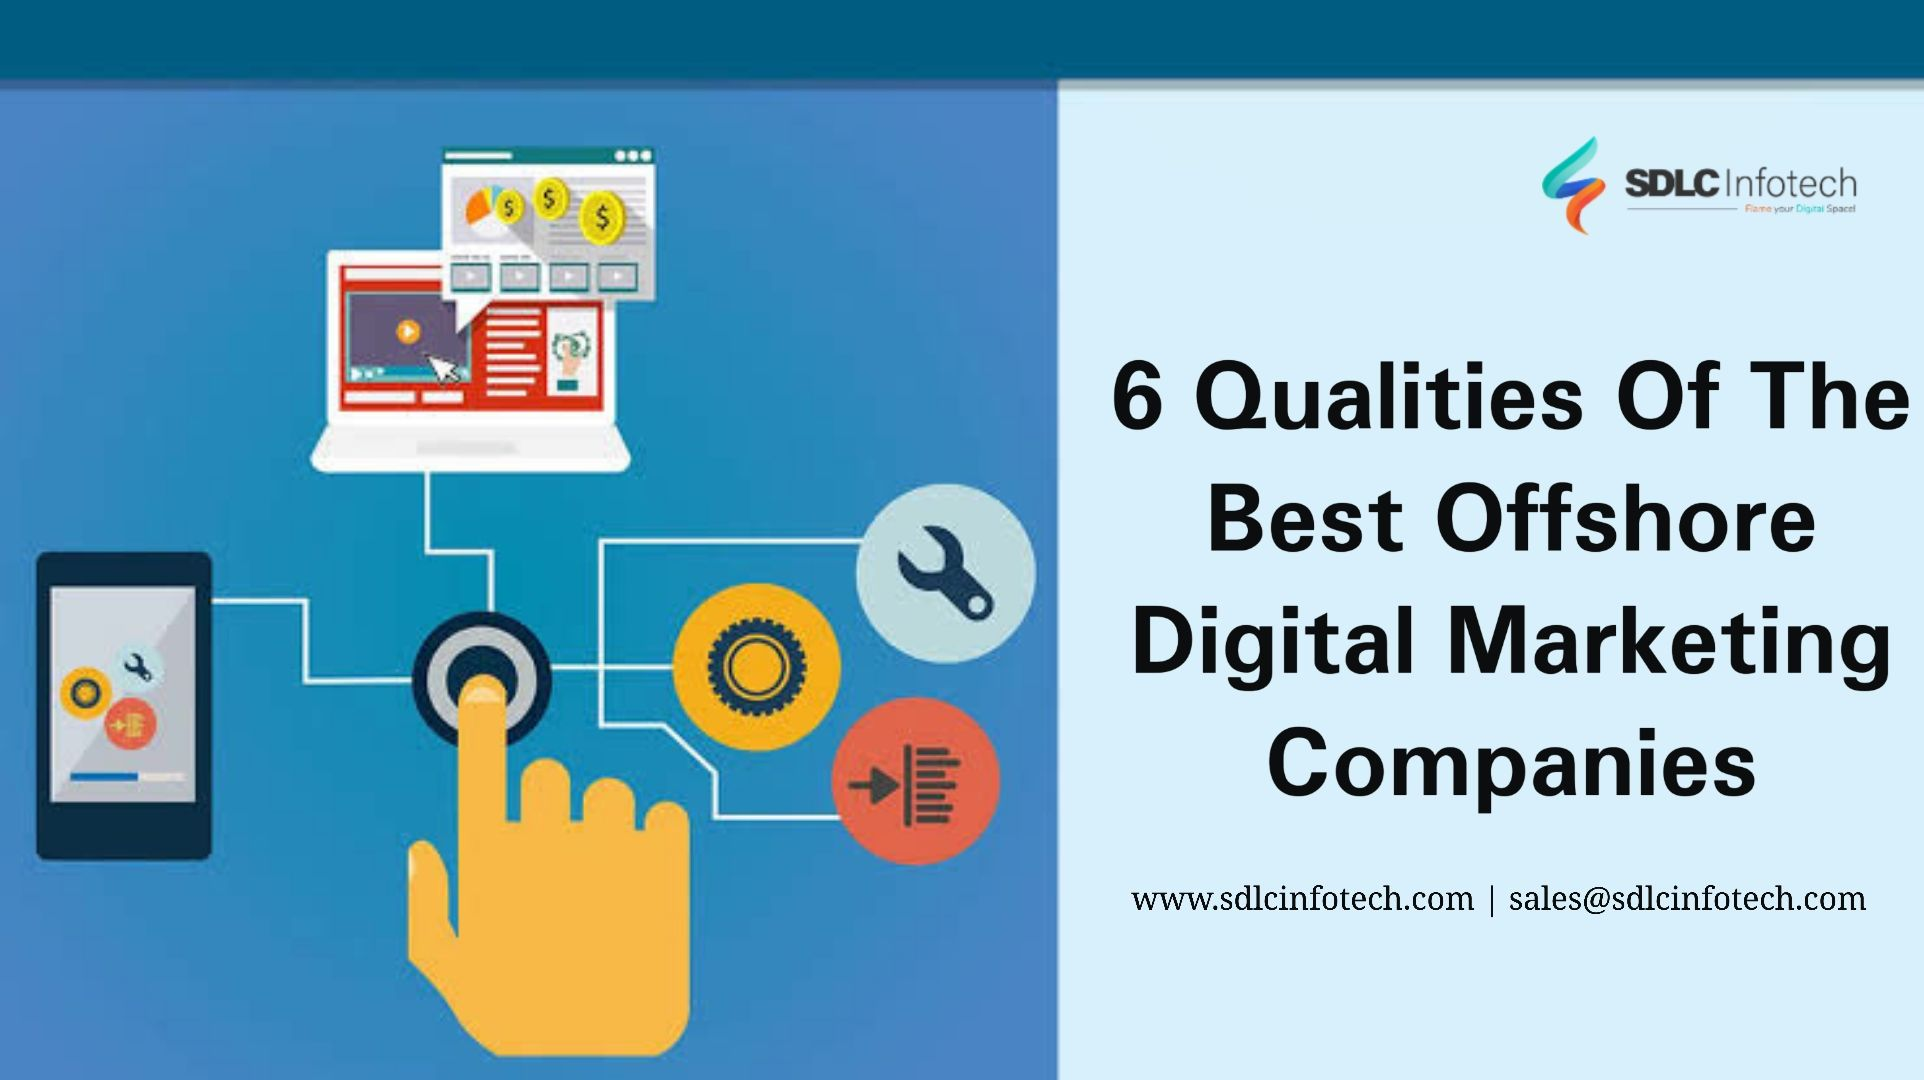 6 qualities of the best offshore digital marketing